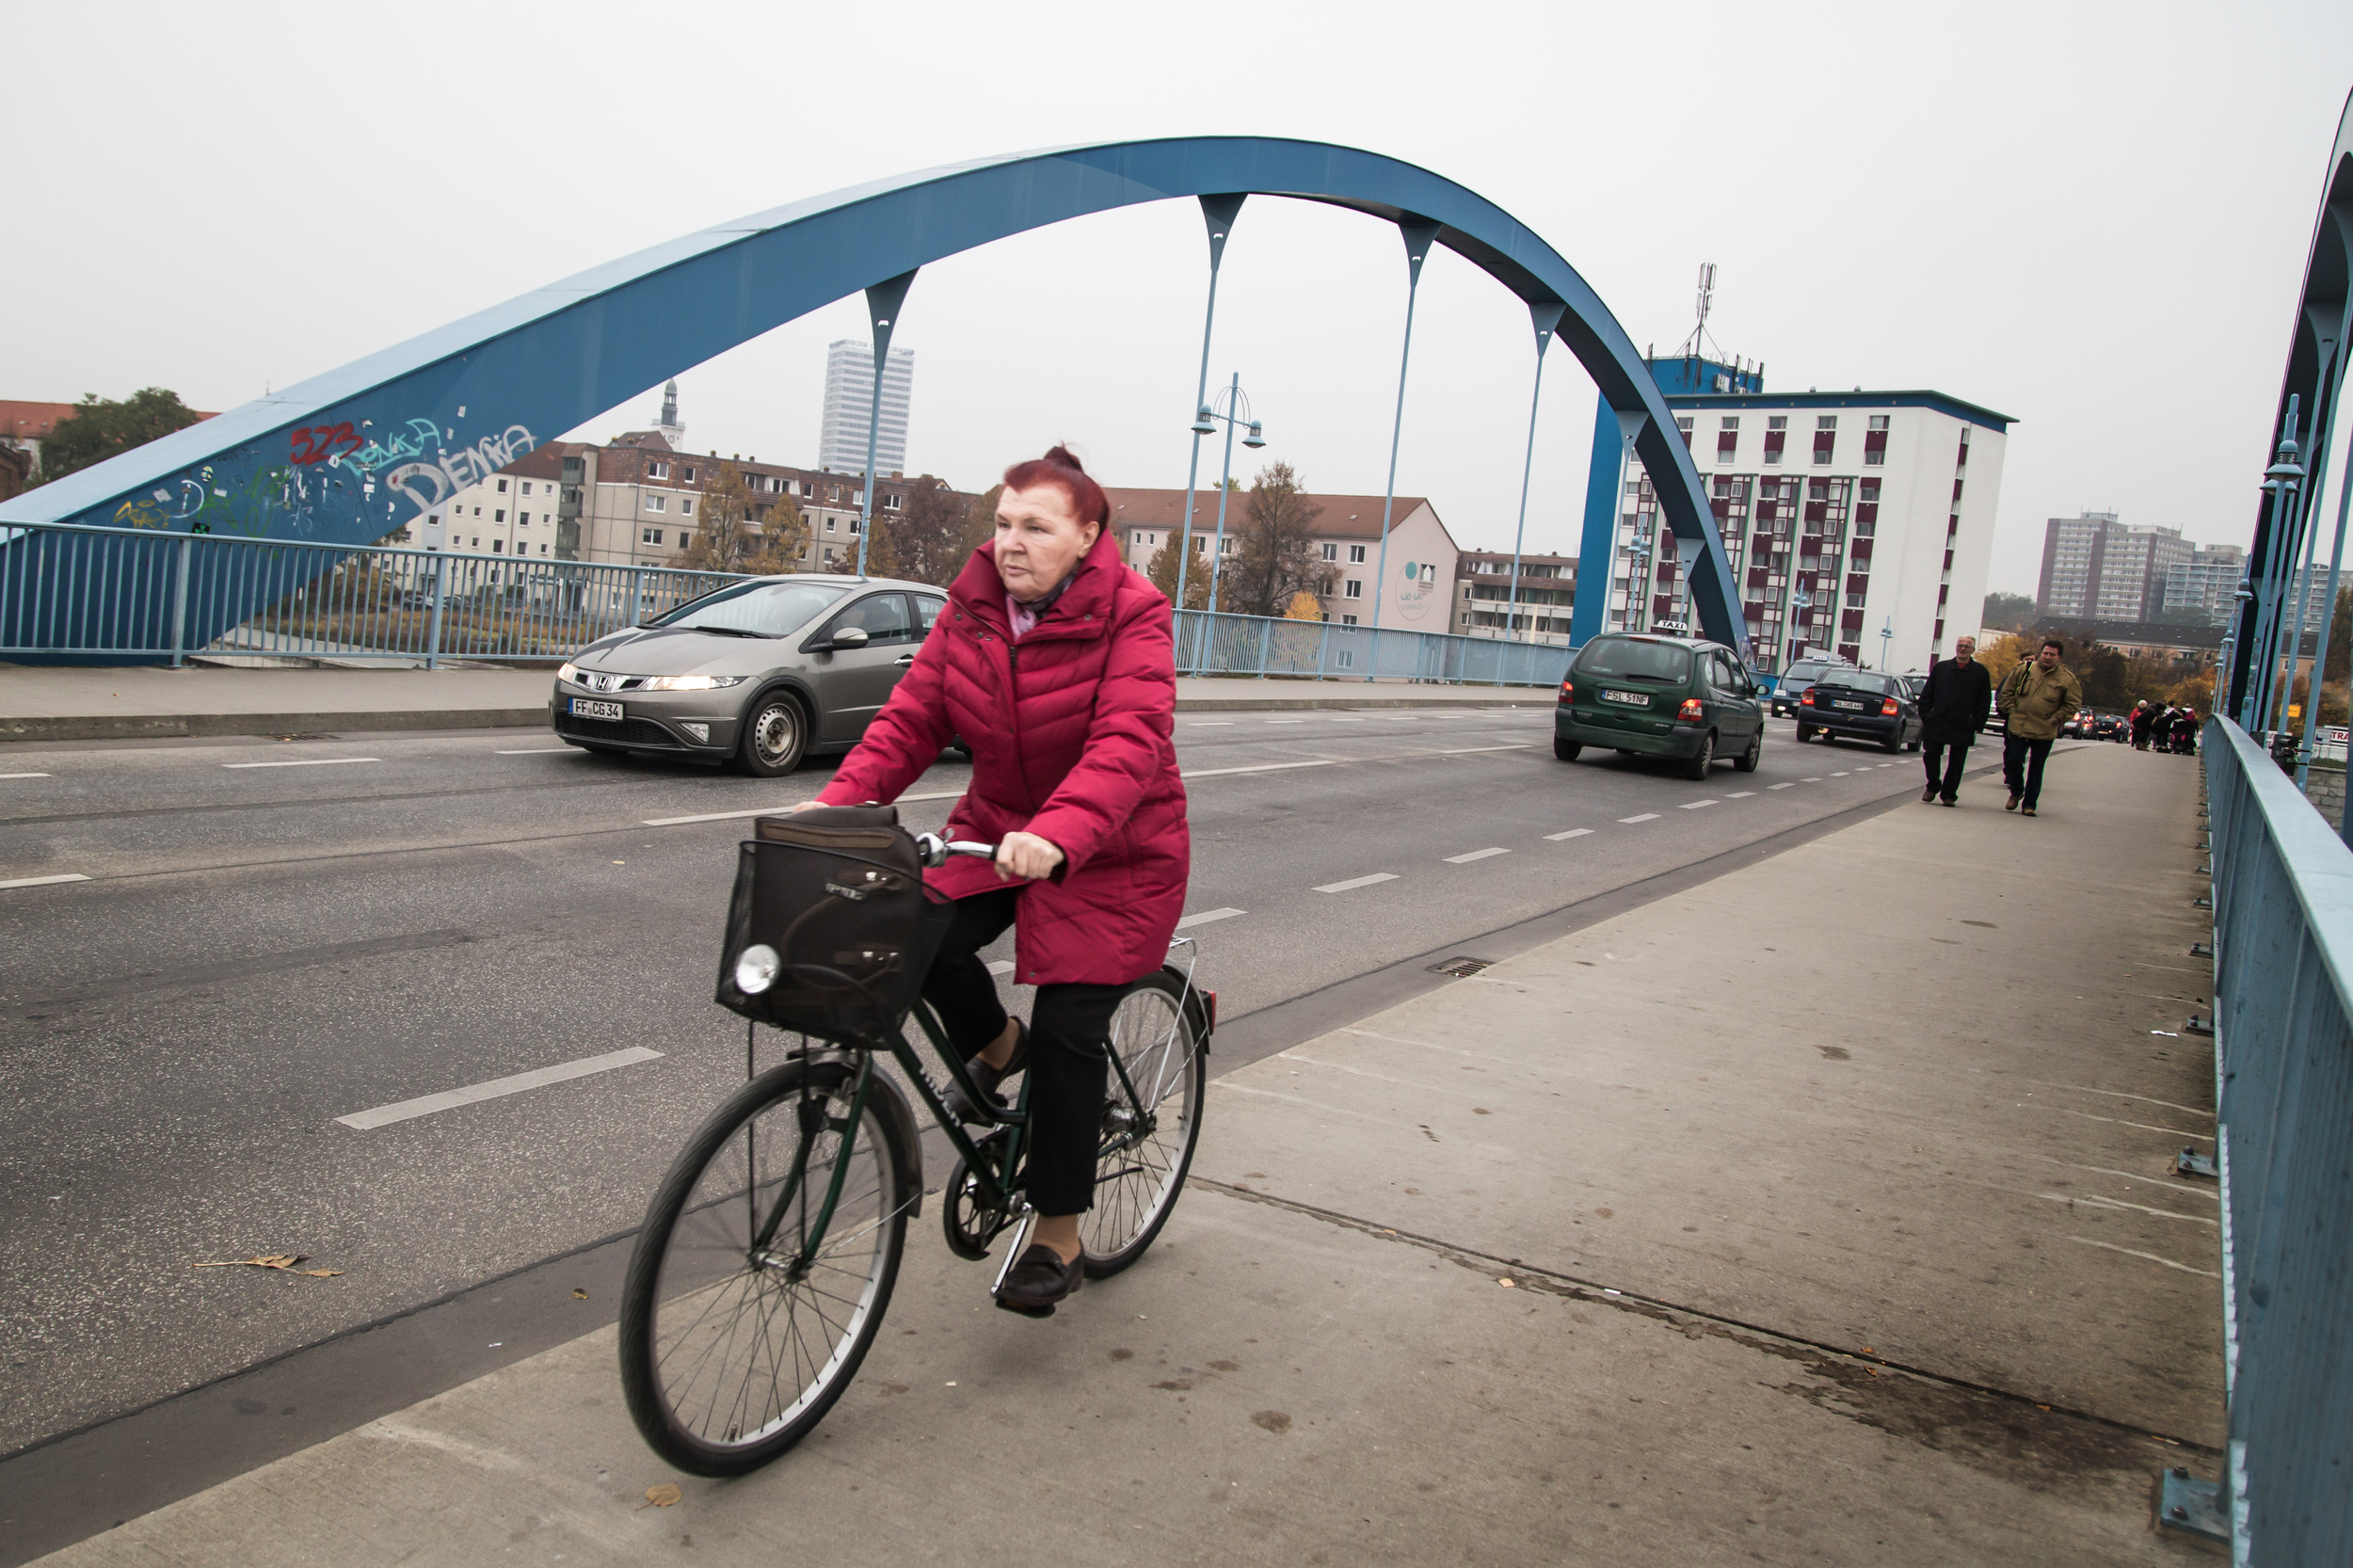 A woman bikes across the   Oder   bridge from Germany's Frankfurt into Slubice, where lower prices for goods draw German shoppers eager for a discount.